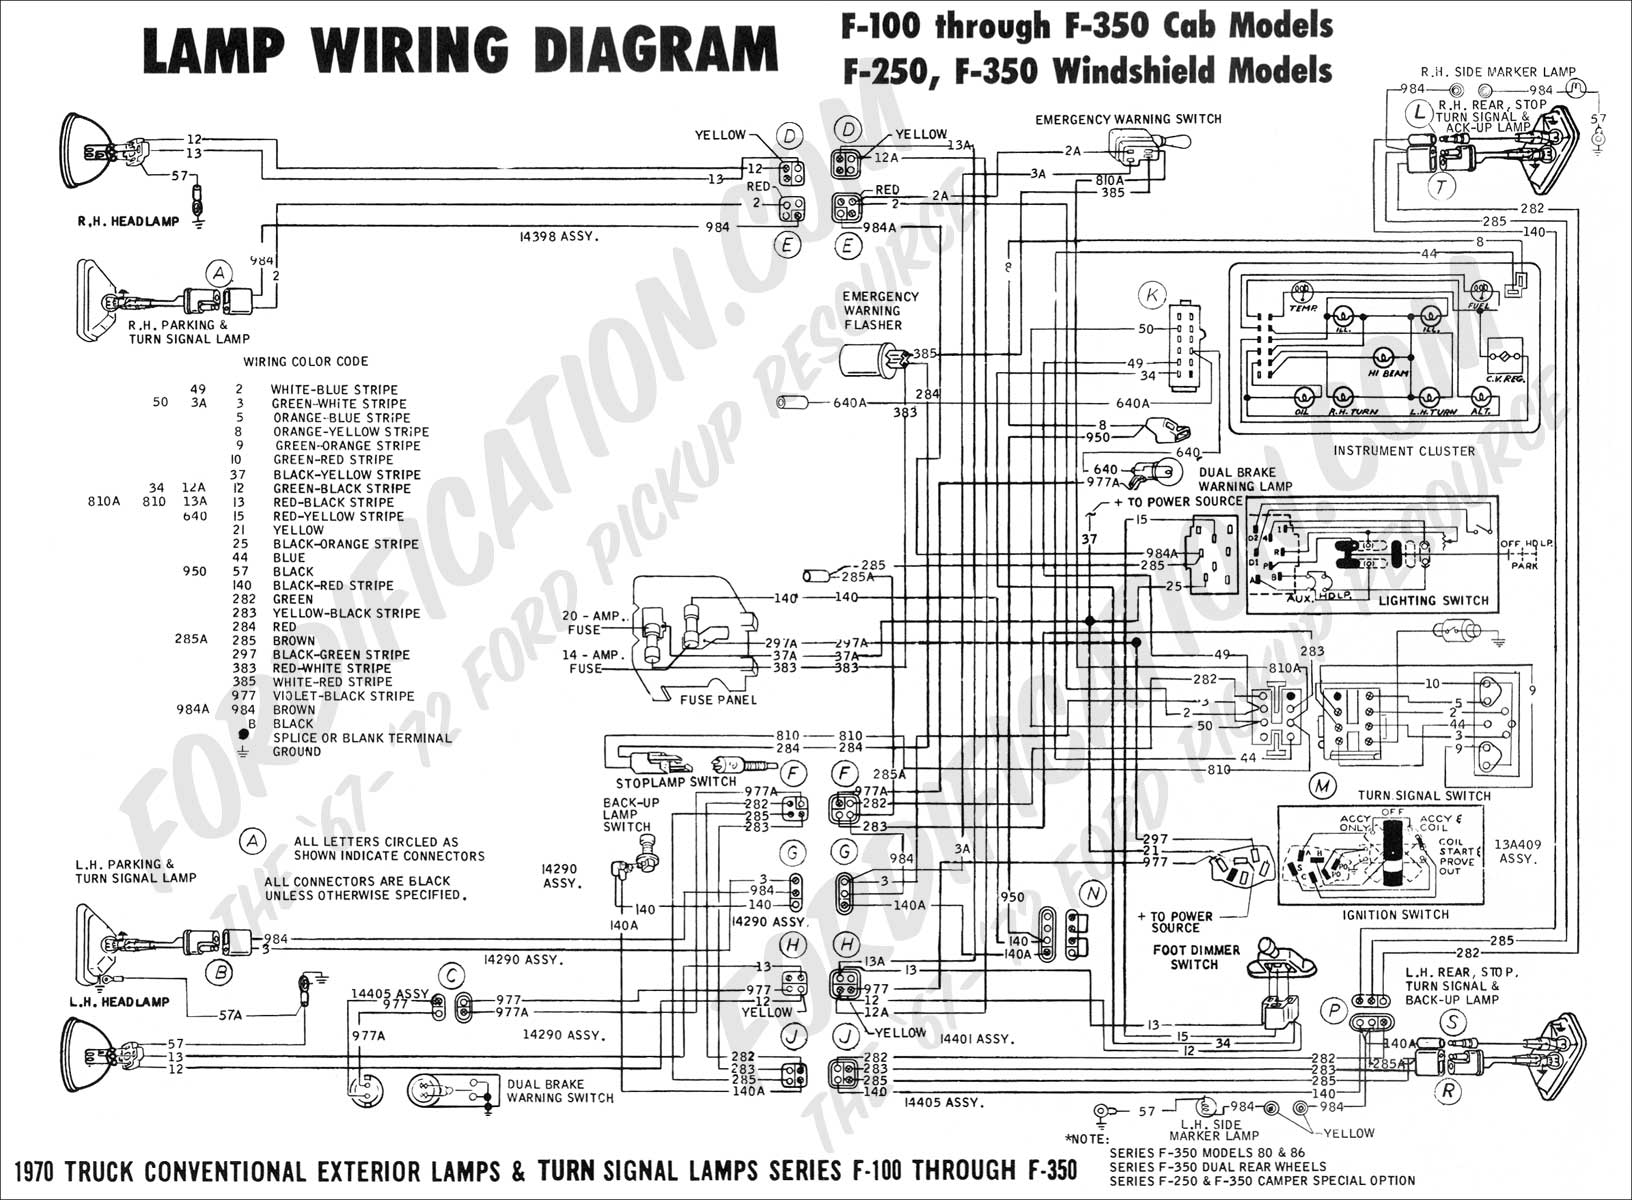 2013 freightliner 108sd wiring diagram 2013 wiring diagrams online 2013 ford wiring diagram 2013 wiring diagrams